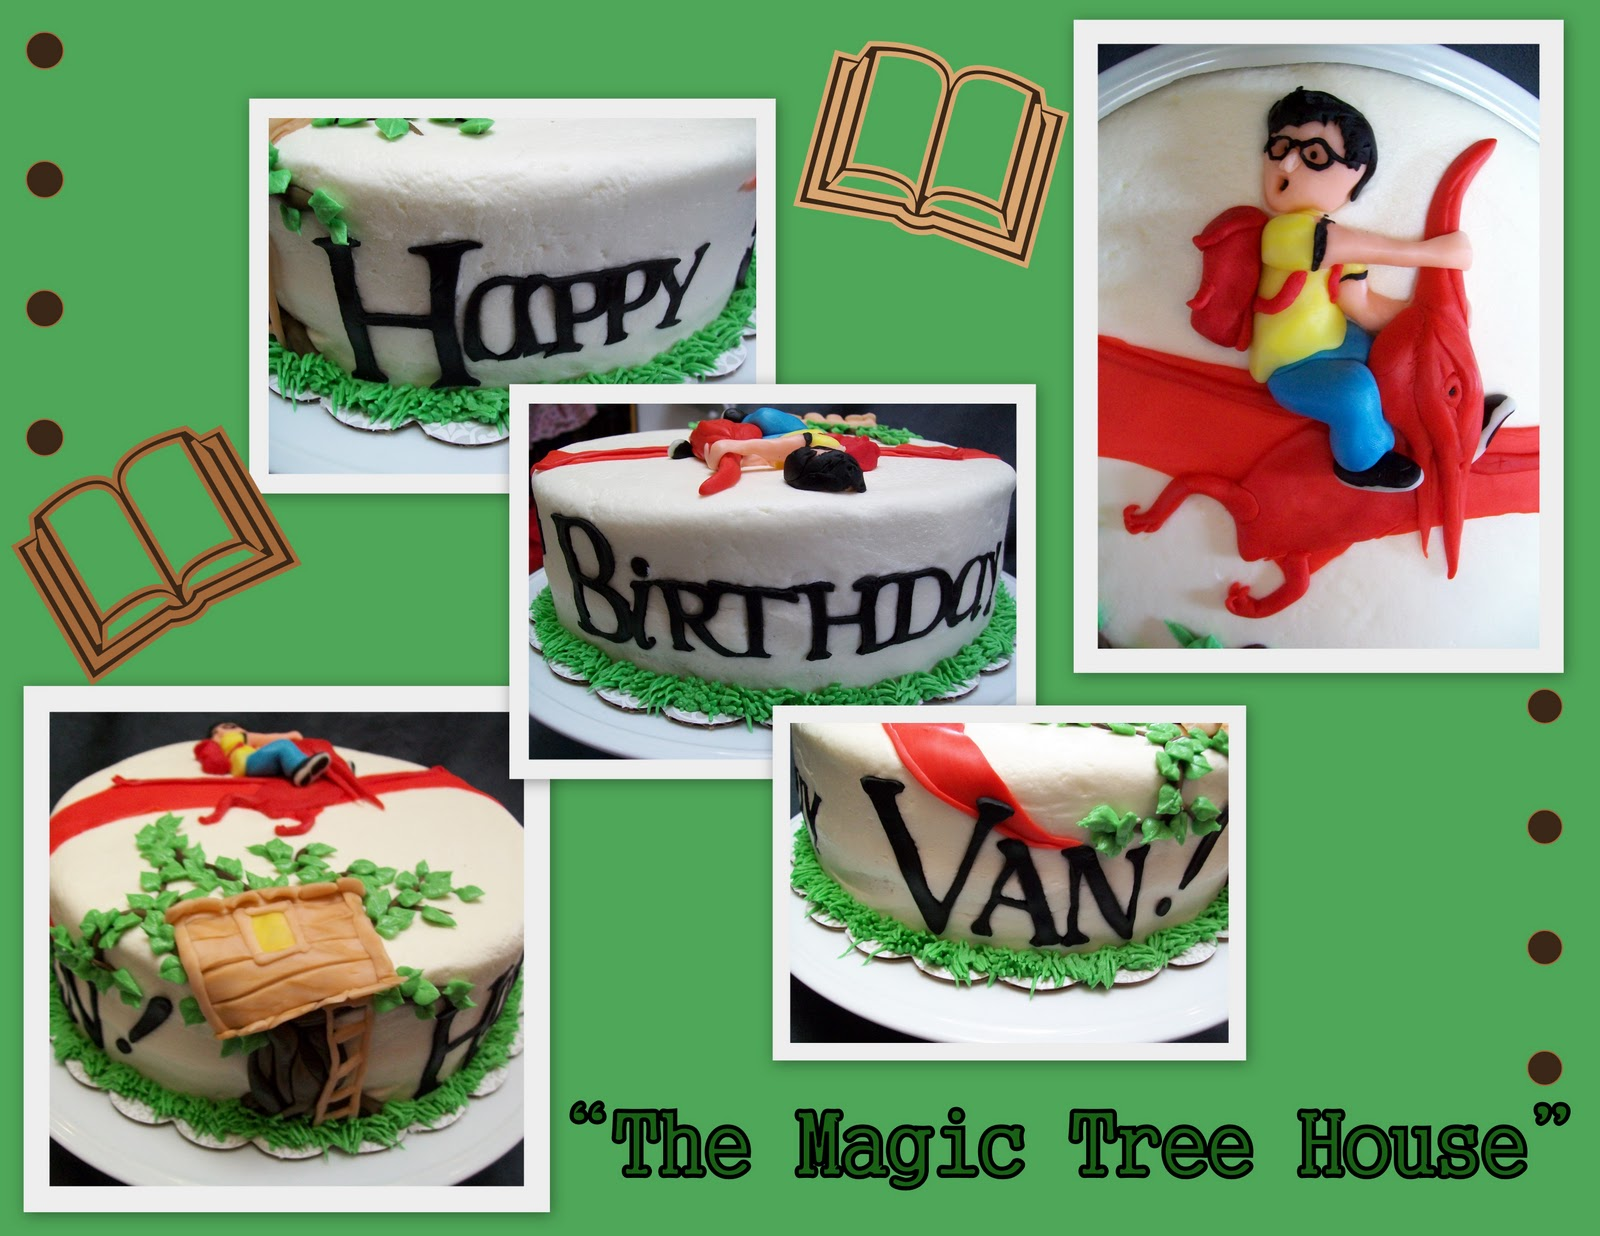 Katies Cakes Magic Tree House Birthday Cake